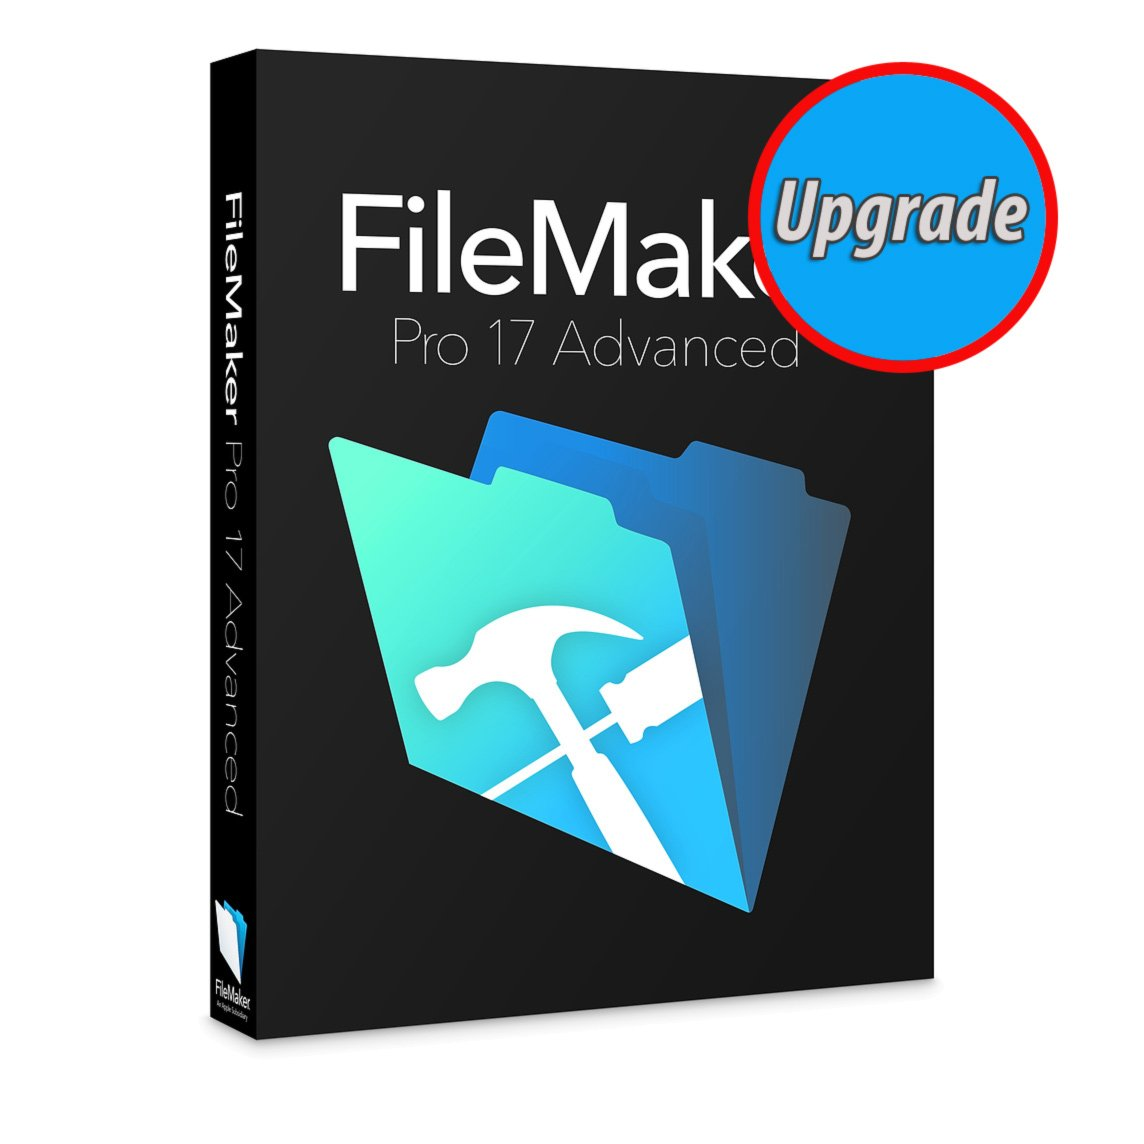 FileMaker Pro v17 Advanced int. Upgrade HLZA2ZM/A